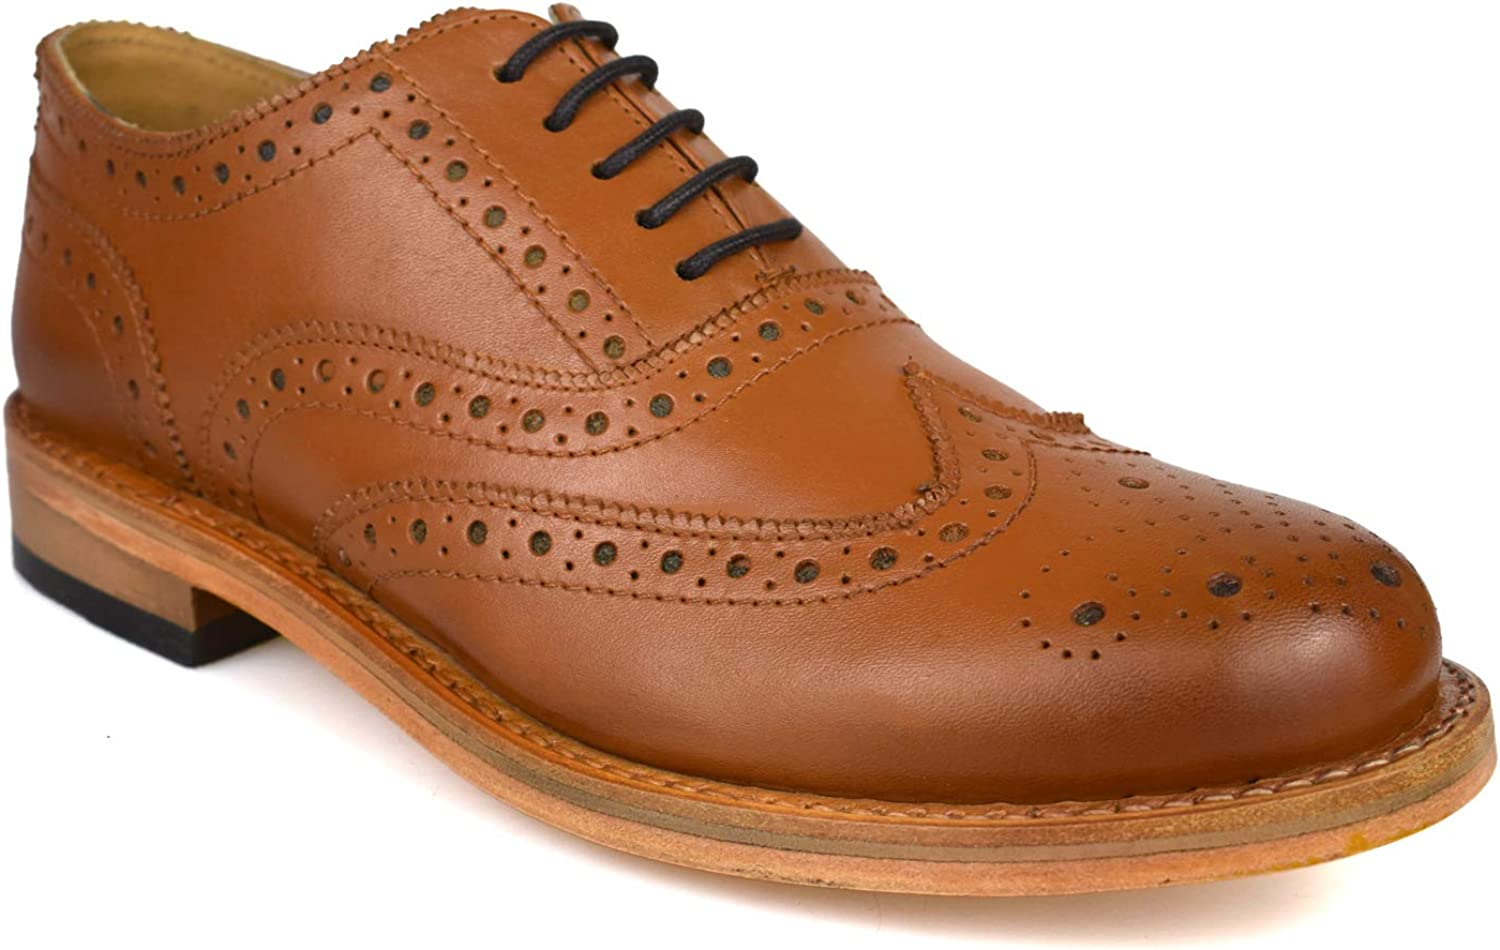 Mens Premium Leather Tan Brown Goodyear Welted Formal Brogues 0310T